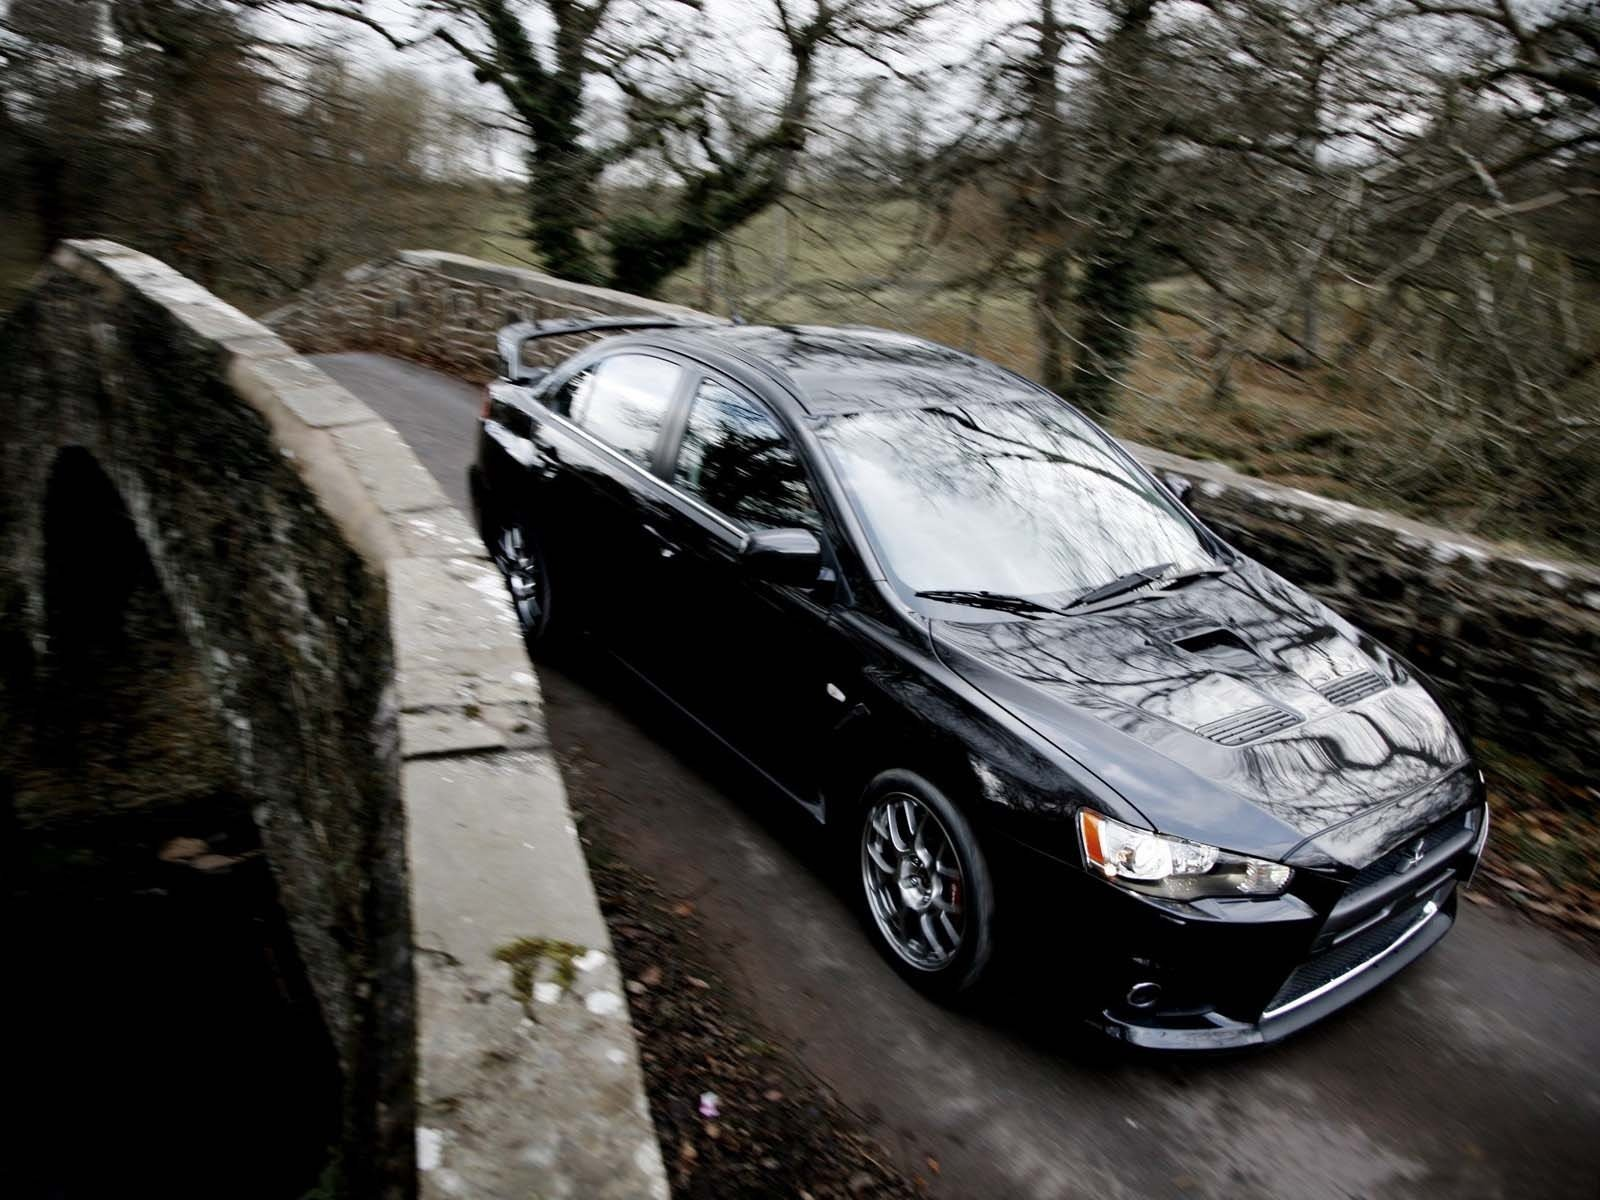 mitsubishi lancer evolution x 2008 old bridge-1600x1200